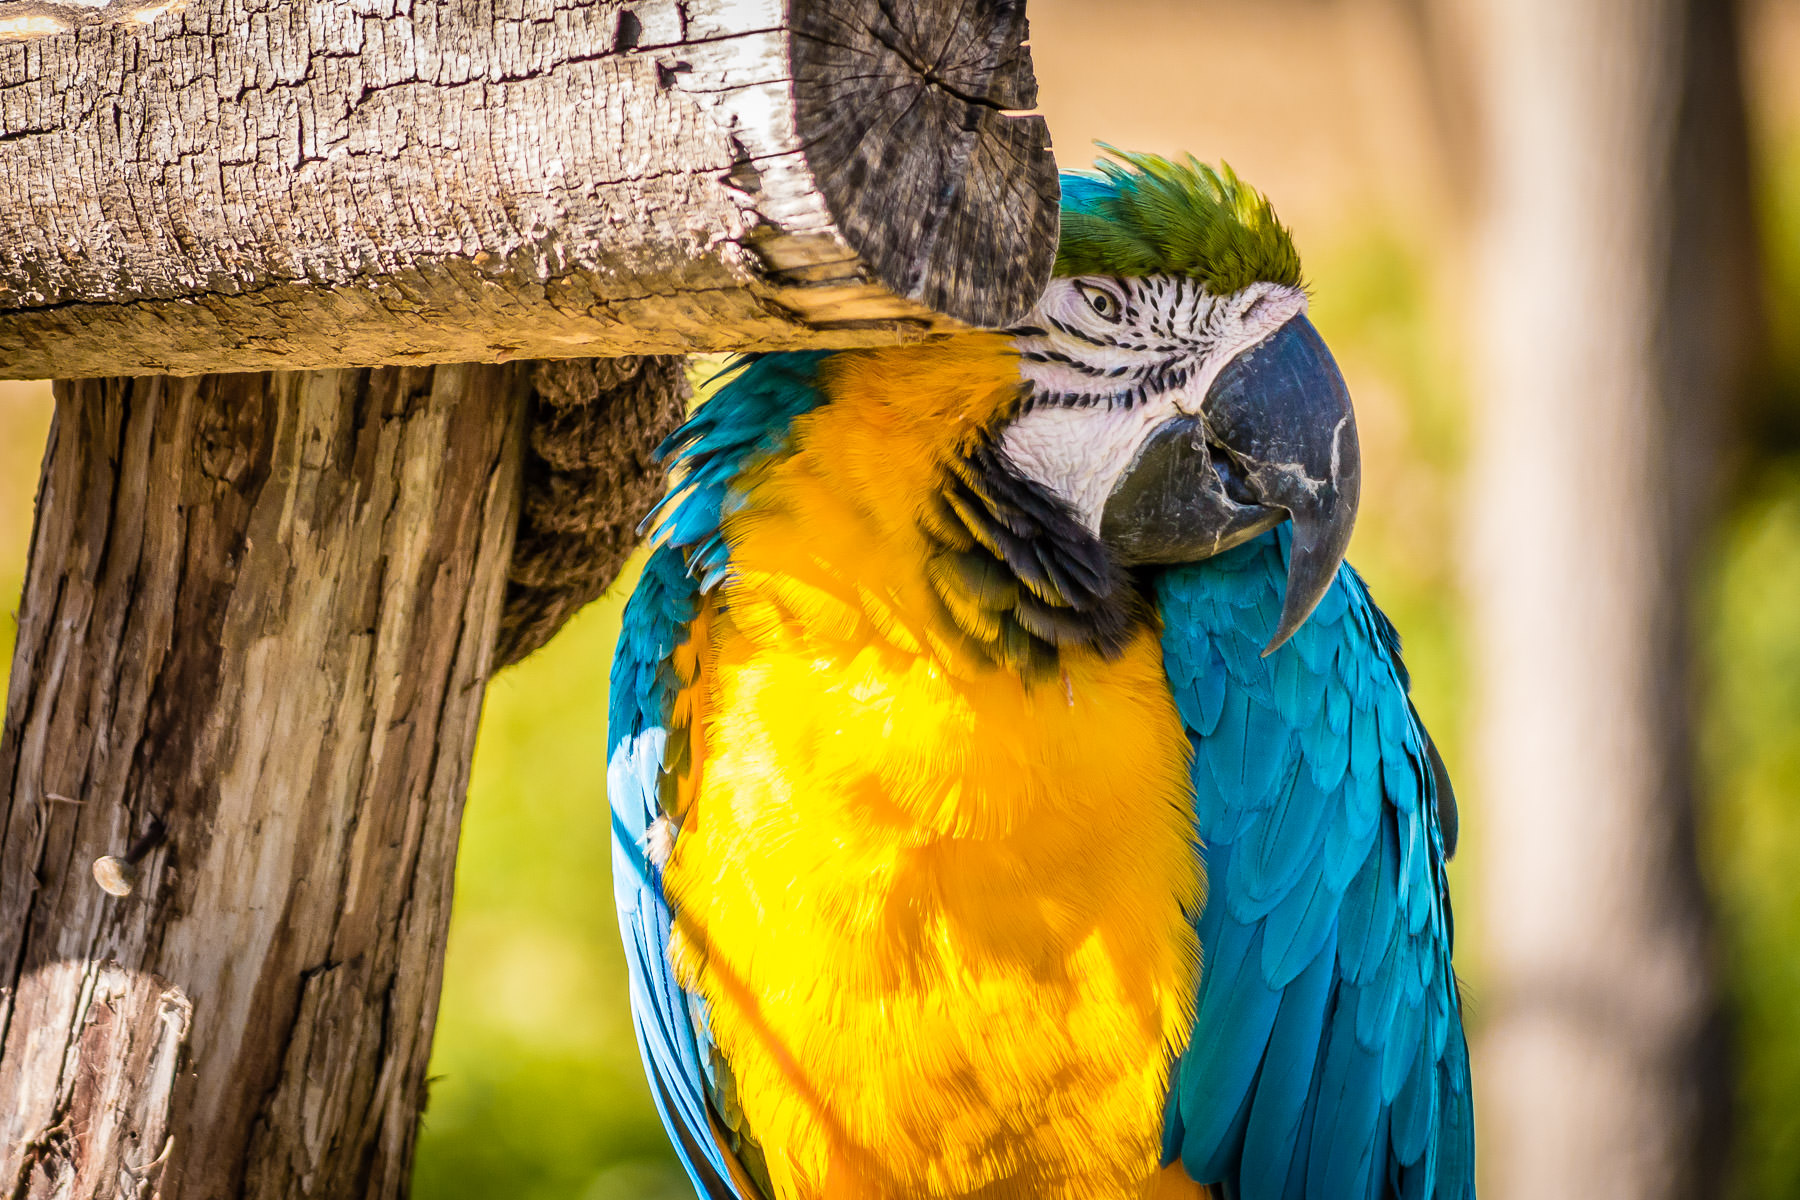 A blue-and-yellow macaw shyly hides behind a perch in his habitat at the Dallas Zoo.